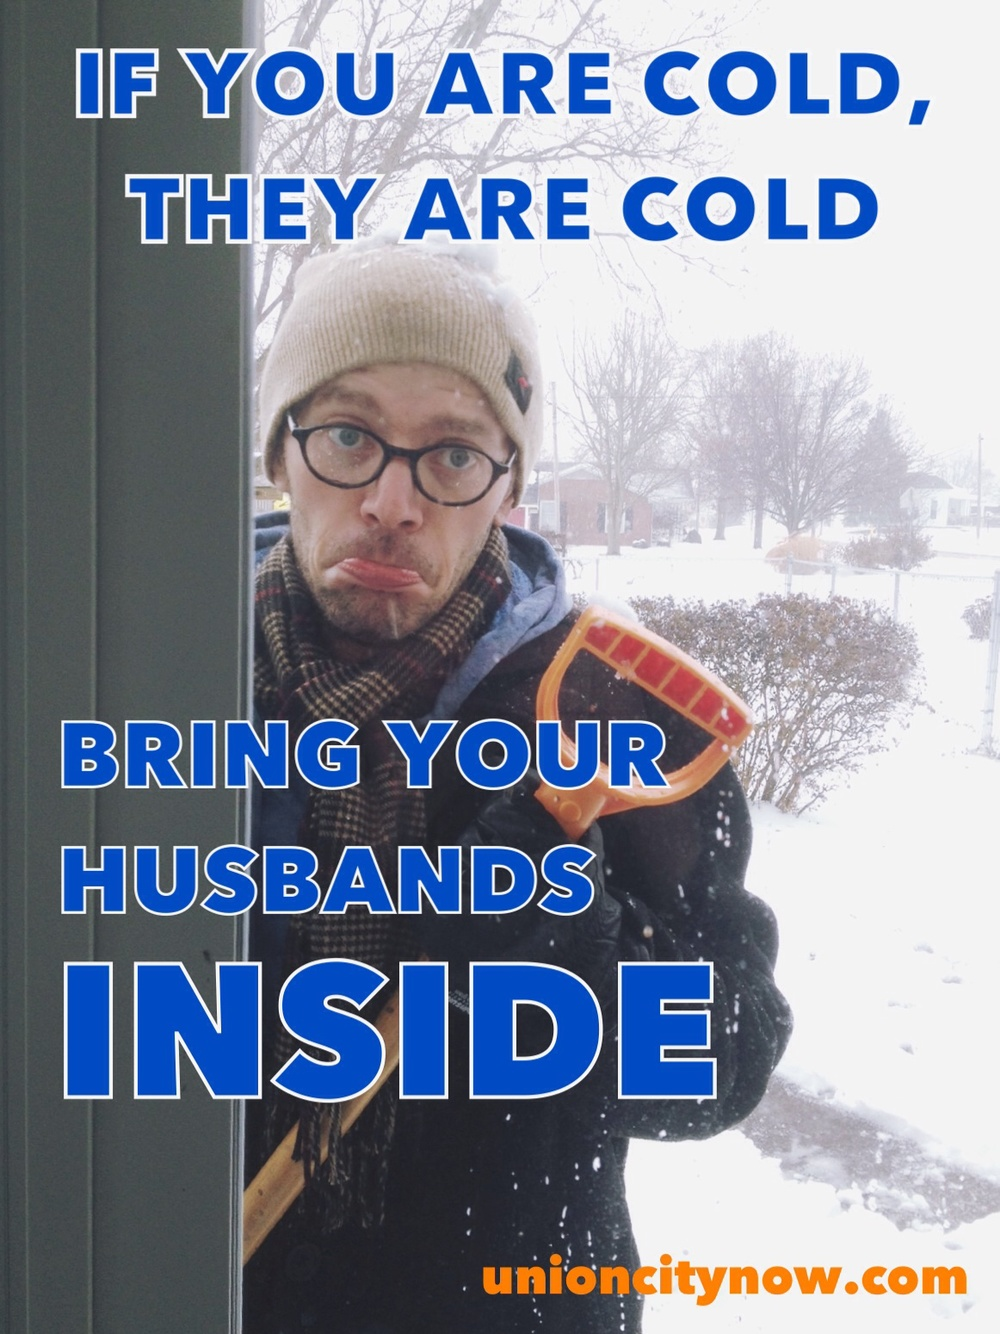 if you are cold, they are cold, bring your husbands inside